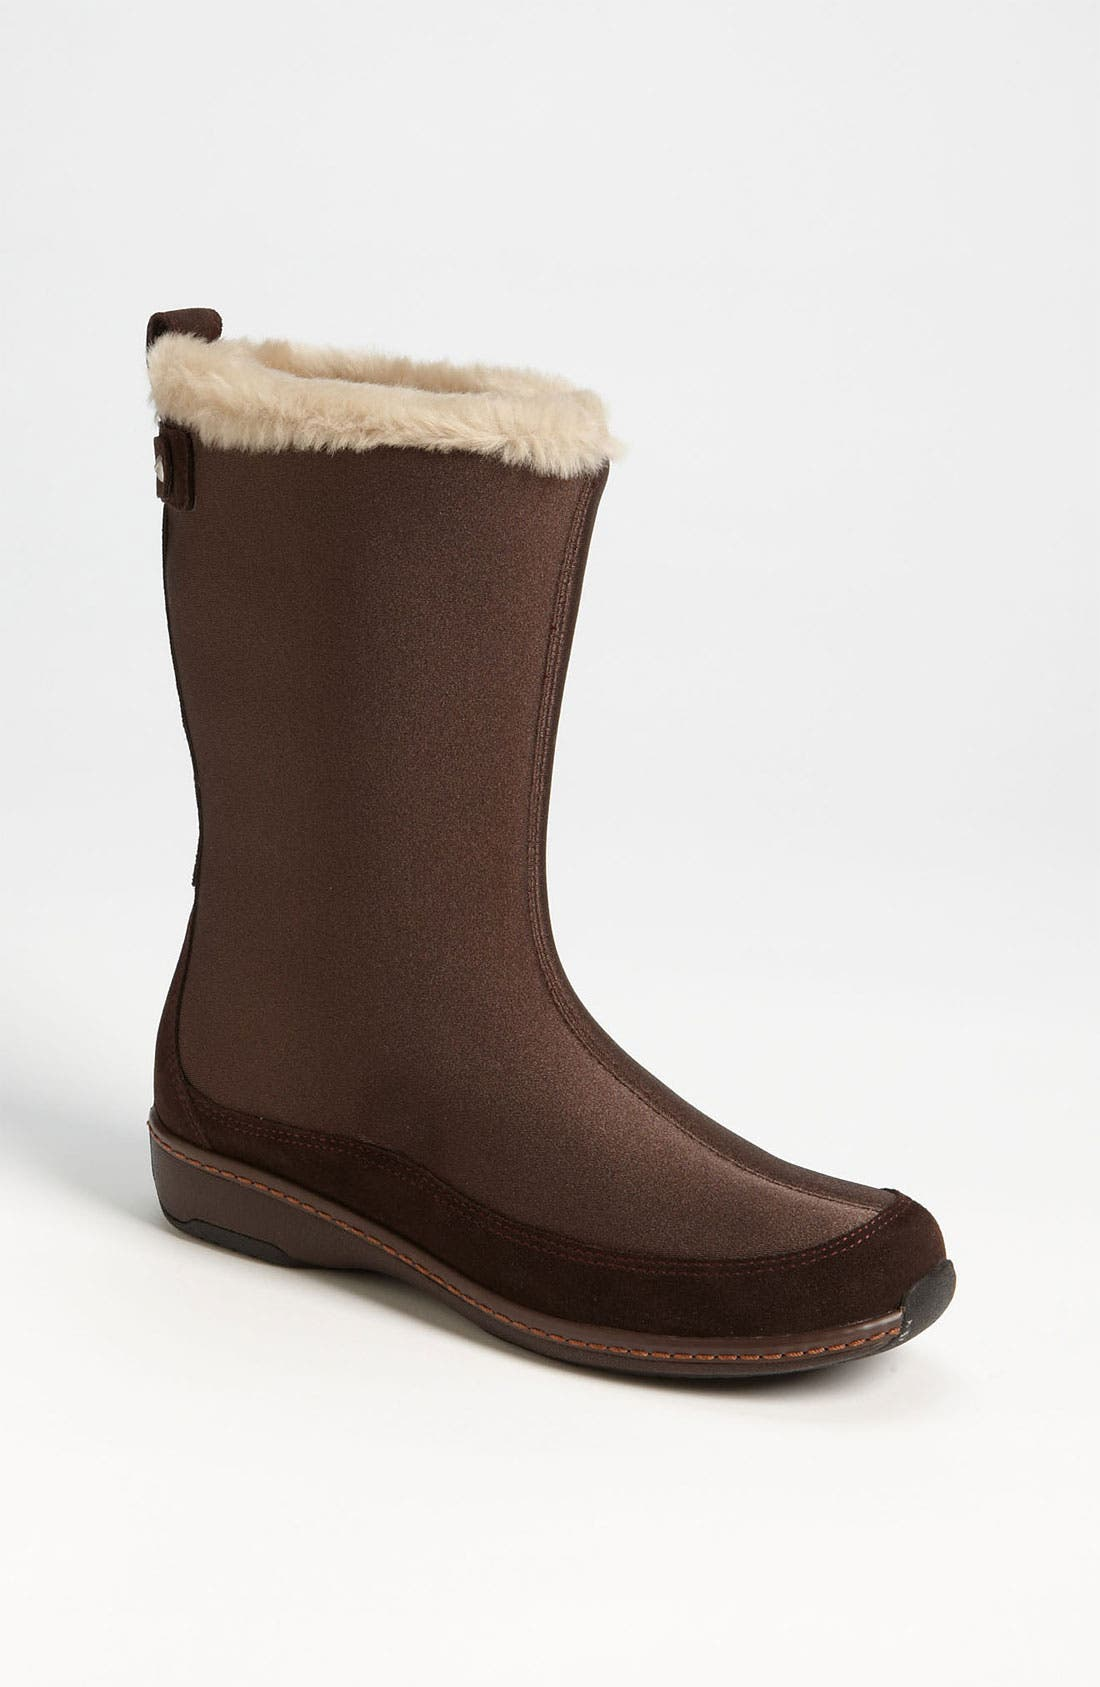 Alternate Image 1 Selected - Aetrex 'Furry' Mid Calf Boot